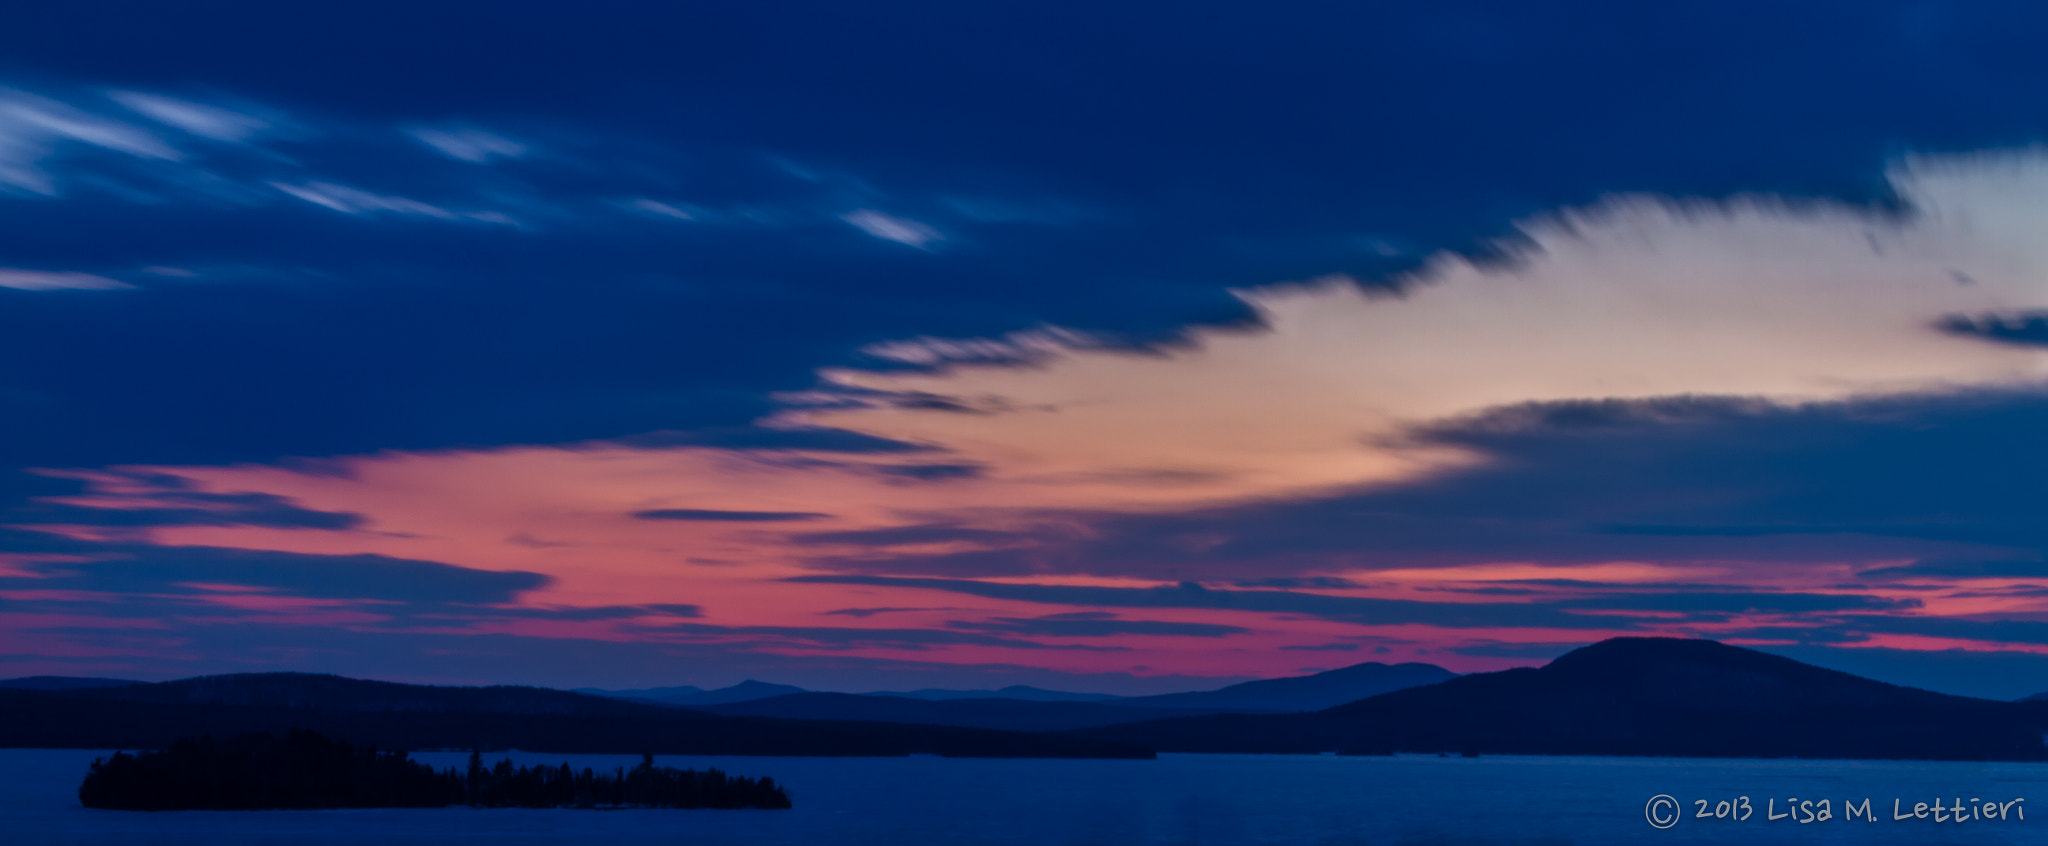 Photograph Sunset over Rangeley Lake by Lisa Lettieri on 500px